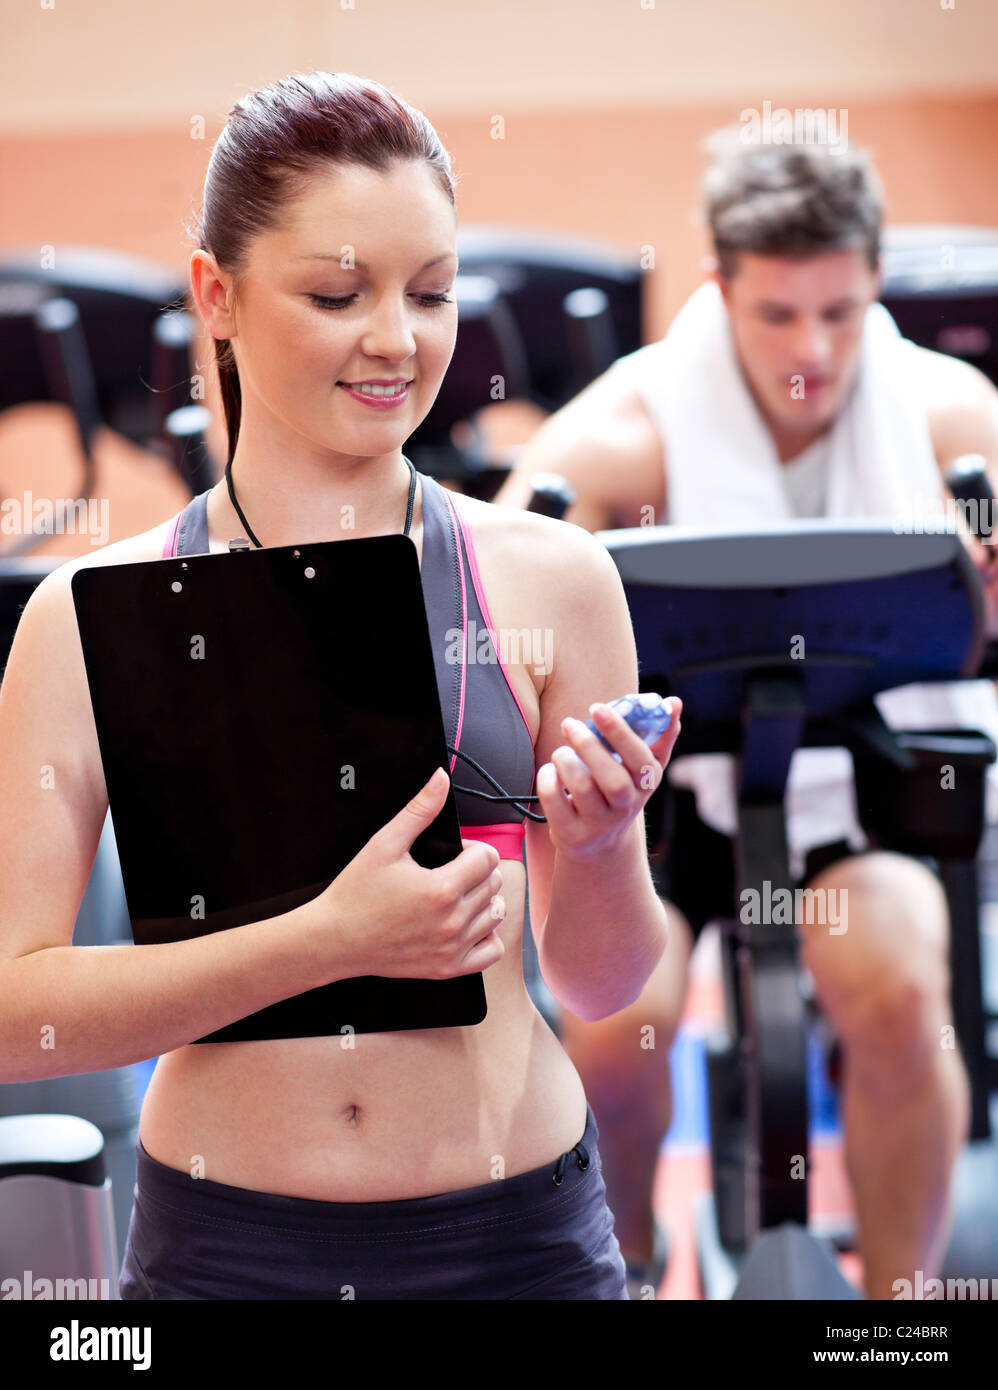 Joyful coach holding a chronometer with man in the background doing physical exercises - Stock Image